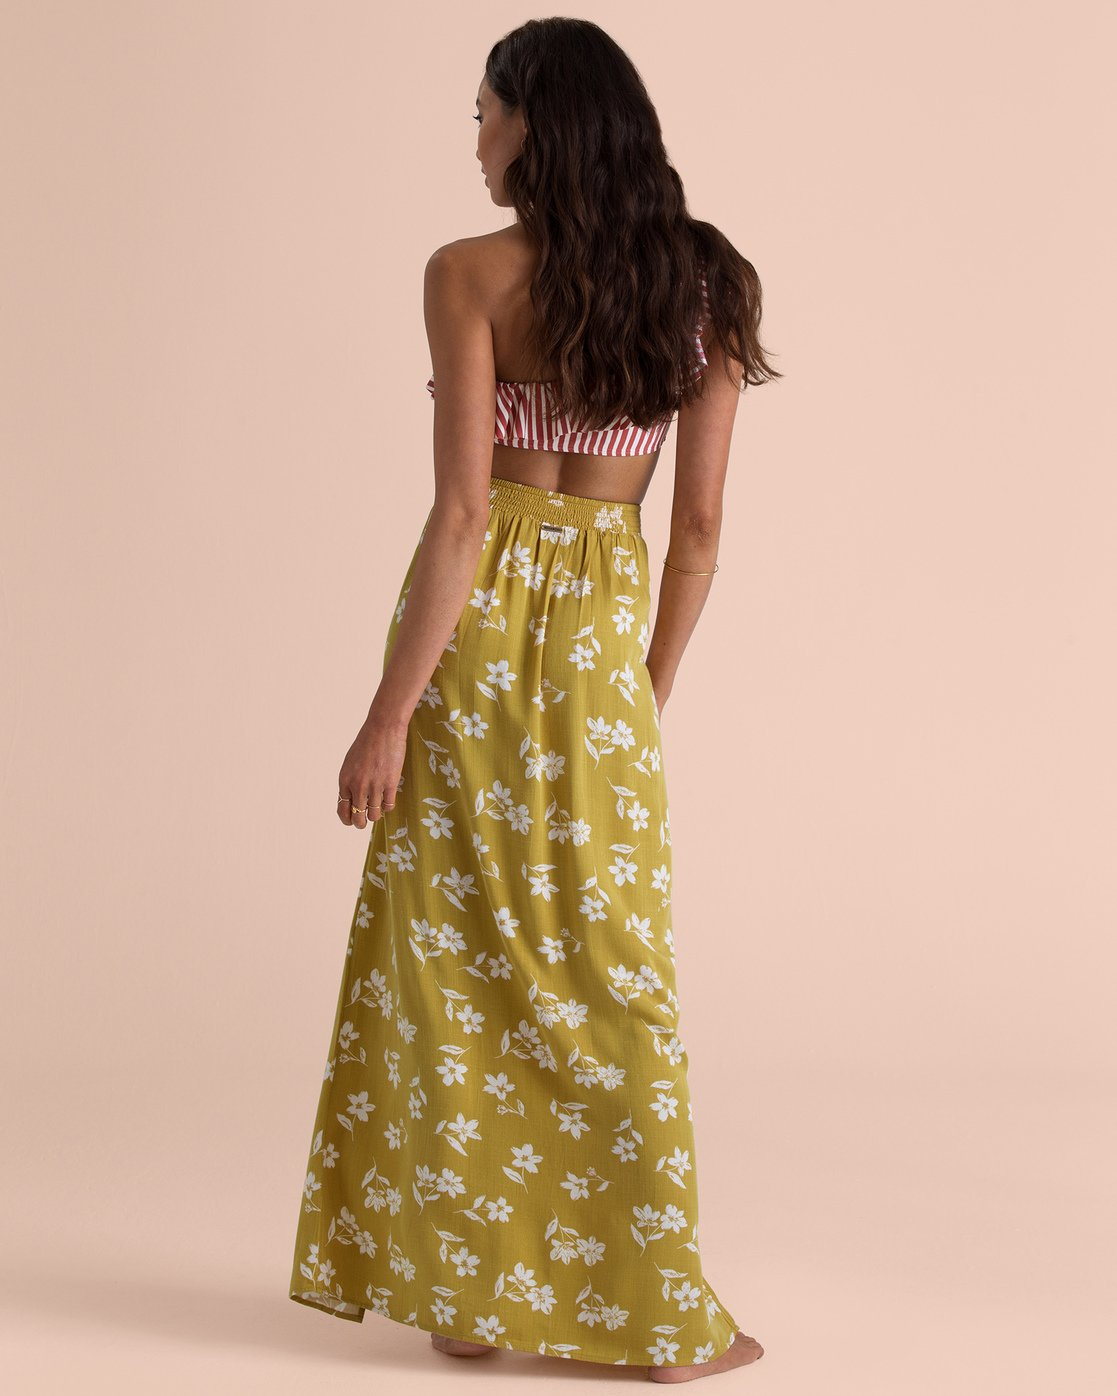 BILLABONG X SINCERELY JULES HIGH HEIGHTS MAXI SKIRT